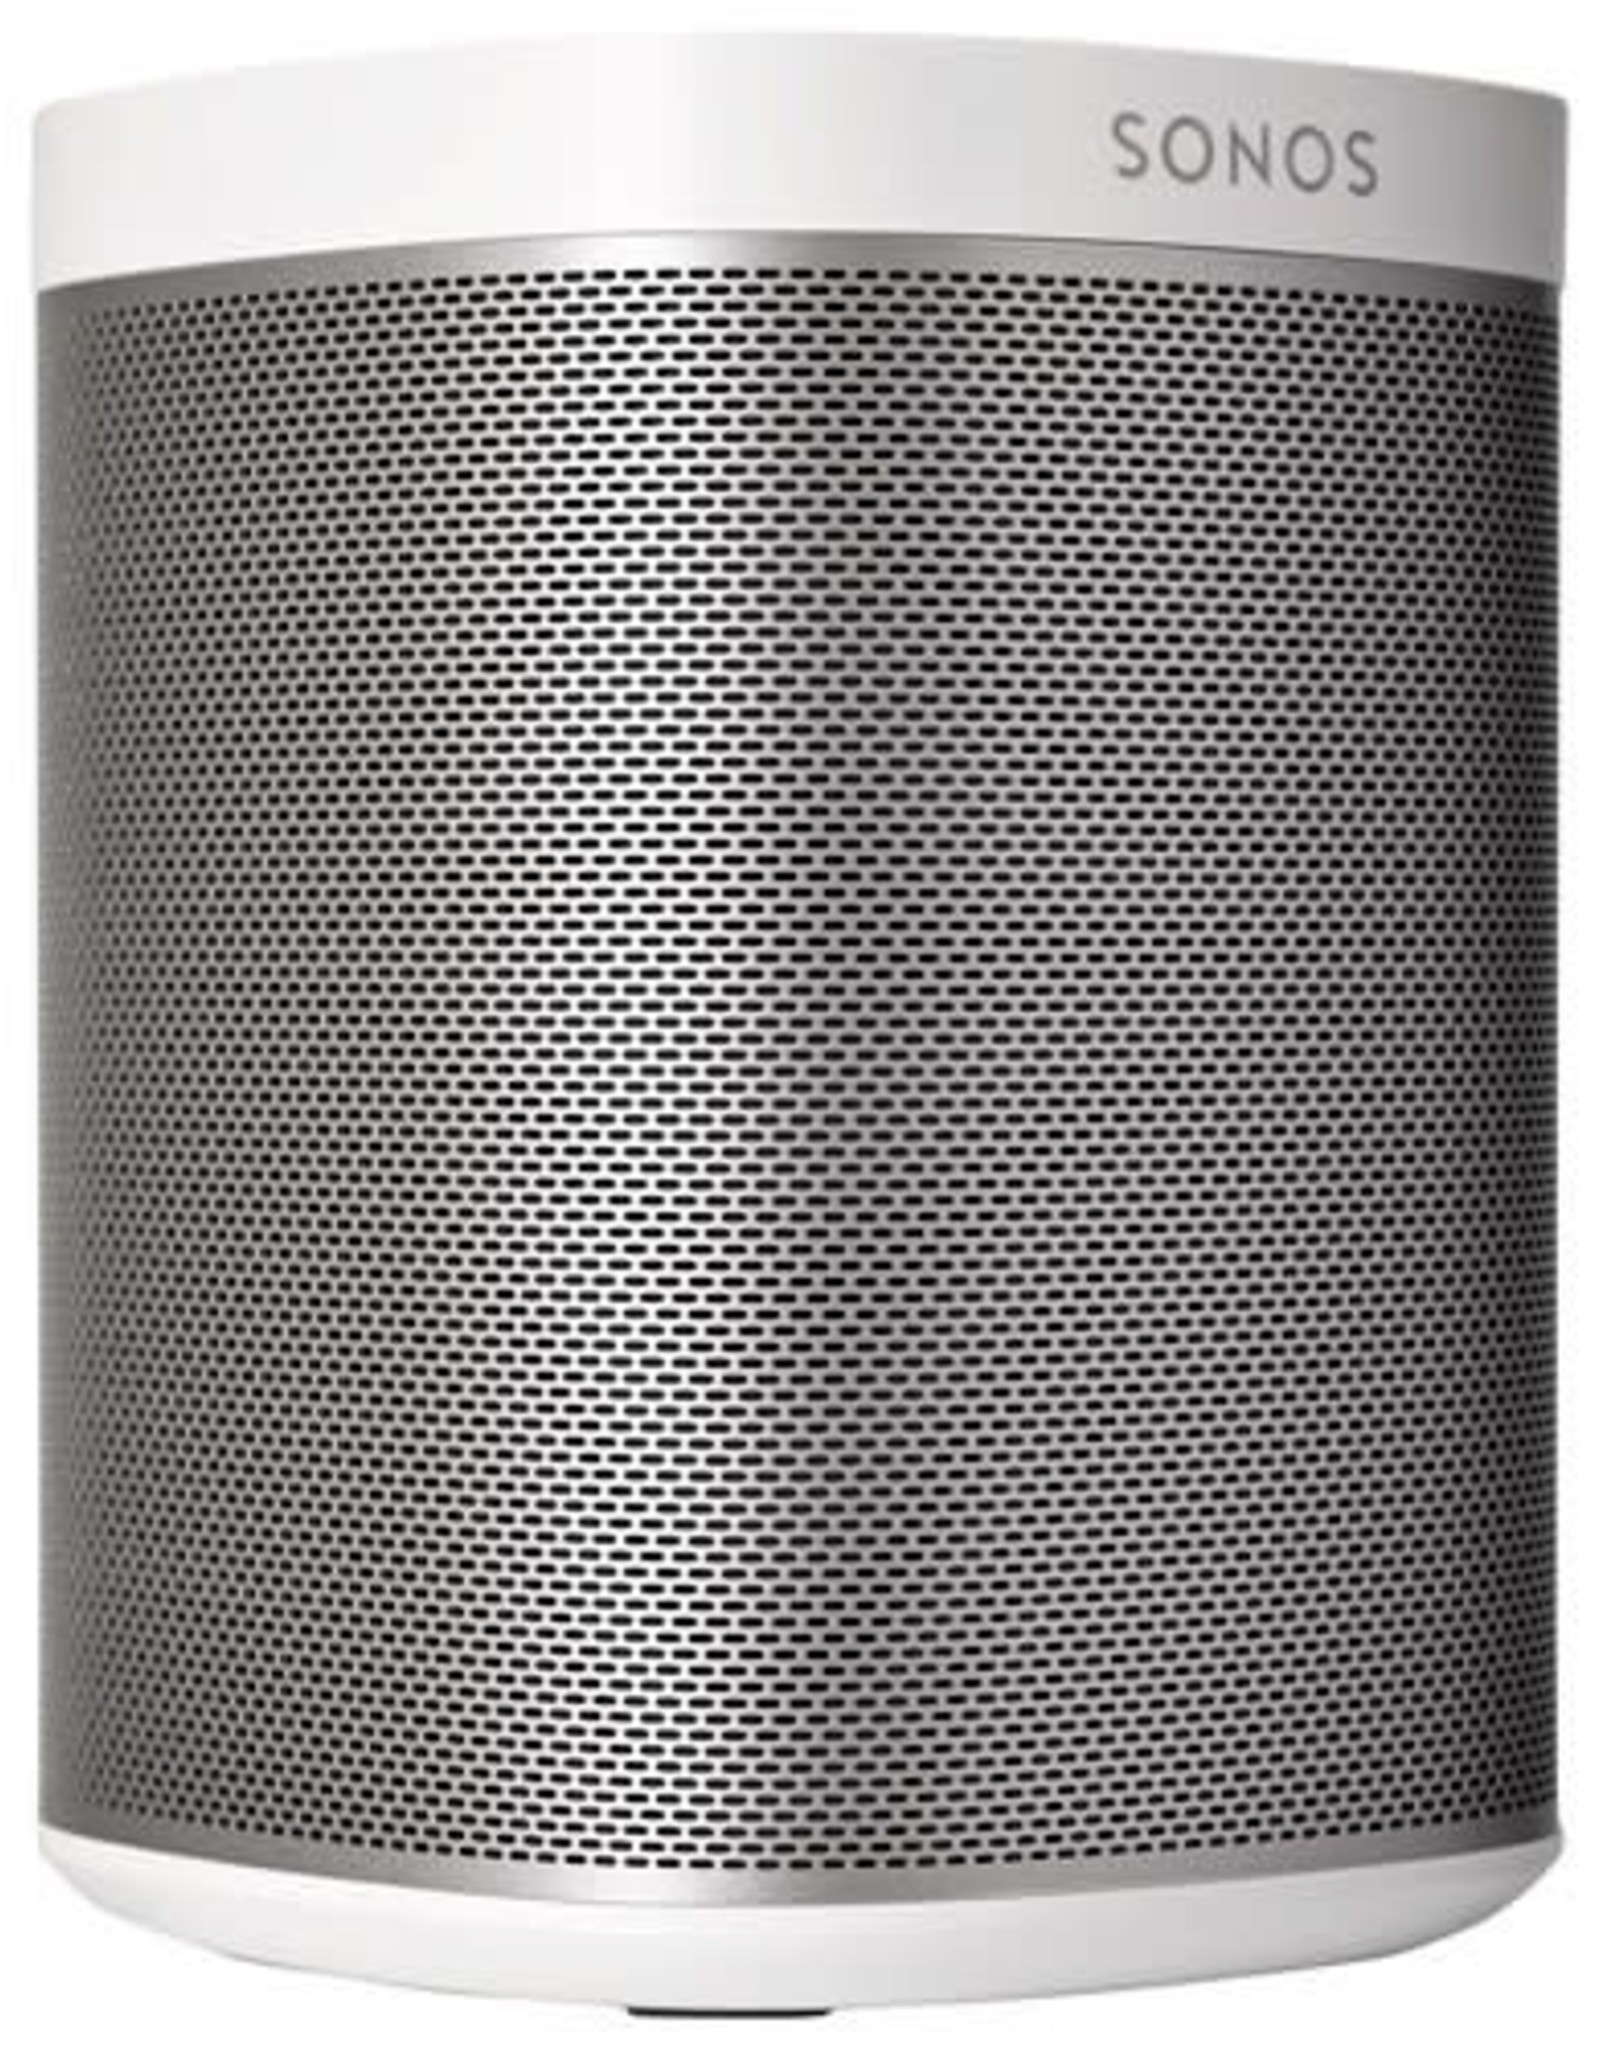 Sonos SONOS | Play:1 Speaker - White | PLAY1US1